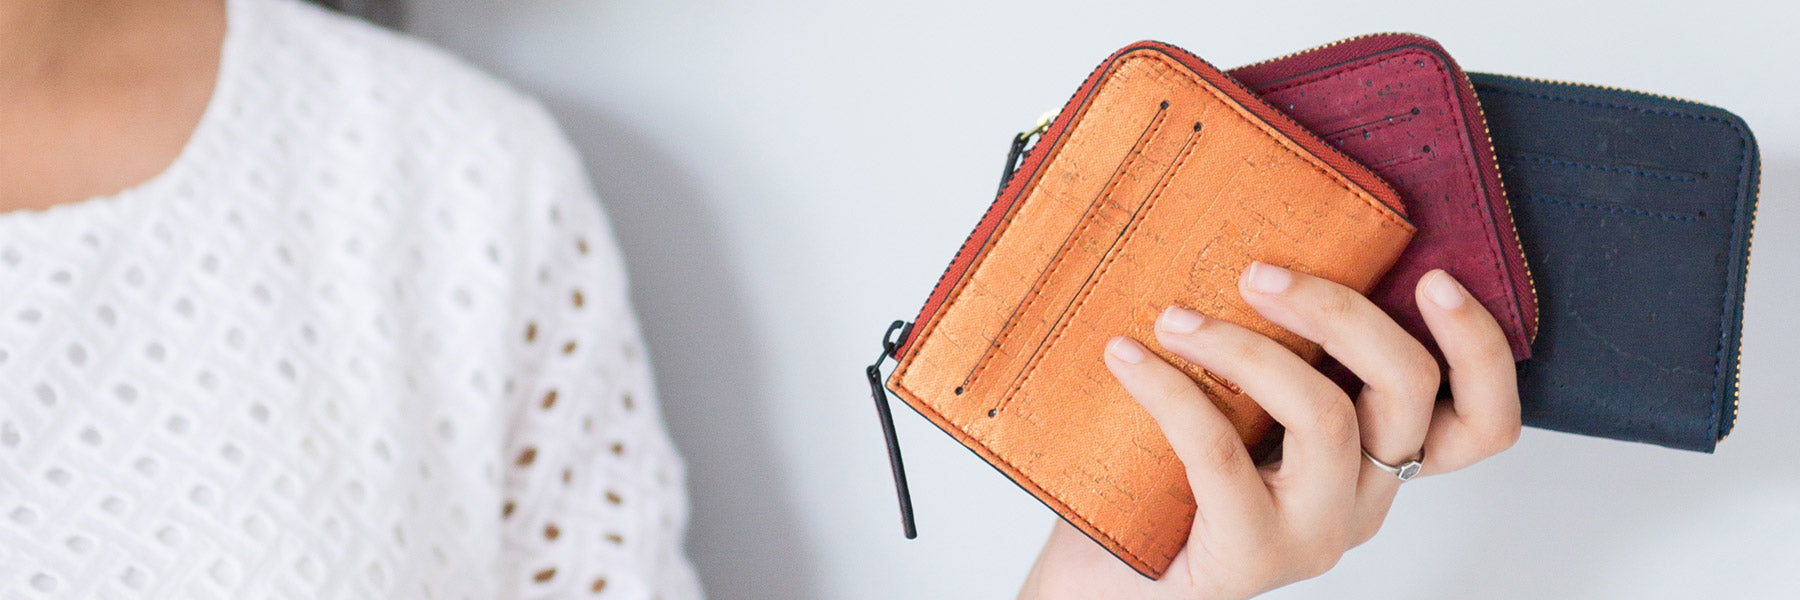 Ember Women's Pocket Wallet